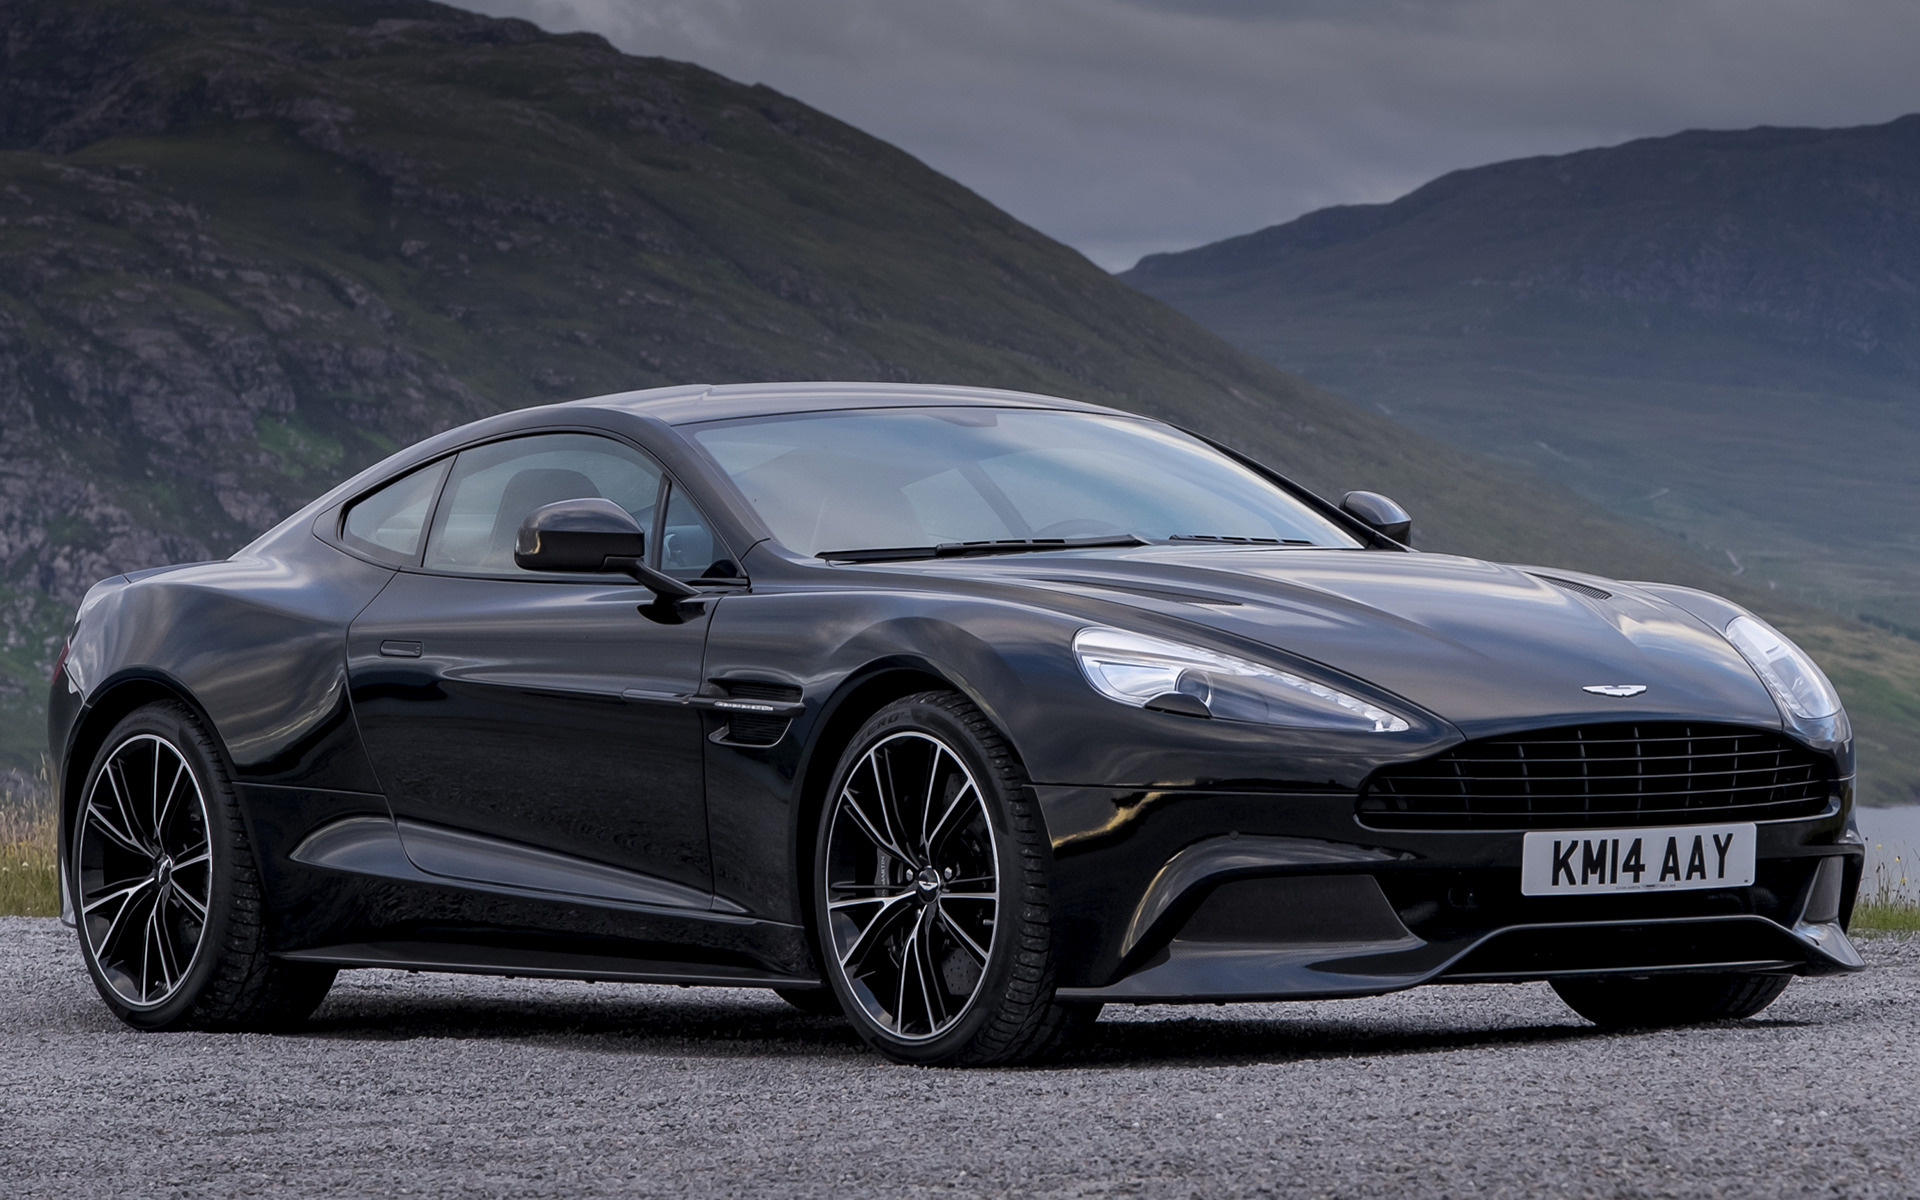 2014 Aston Martin Vanquish Carbon Black Wallpapers And